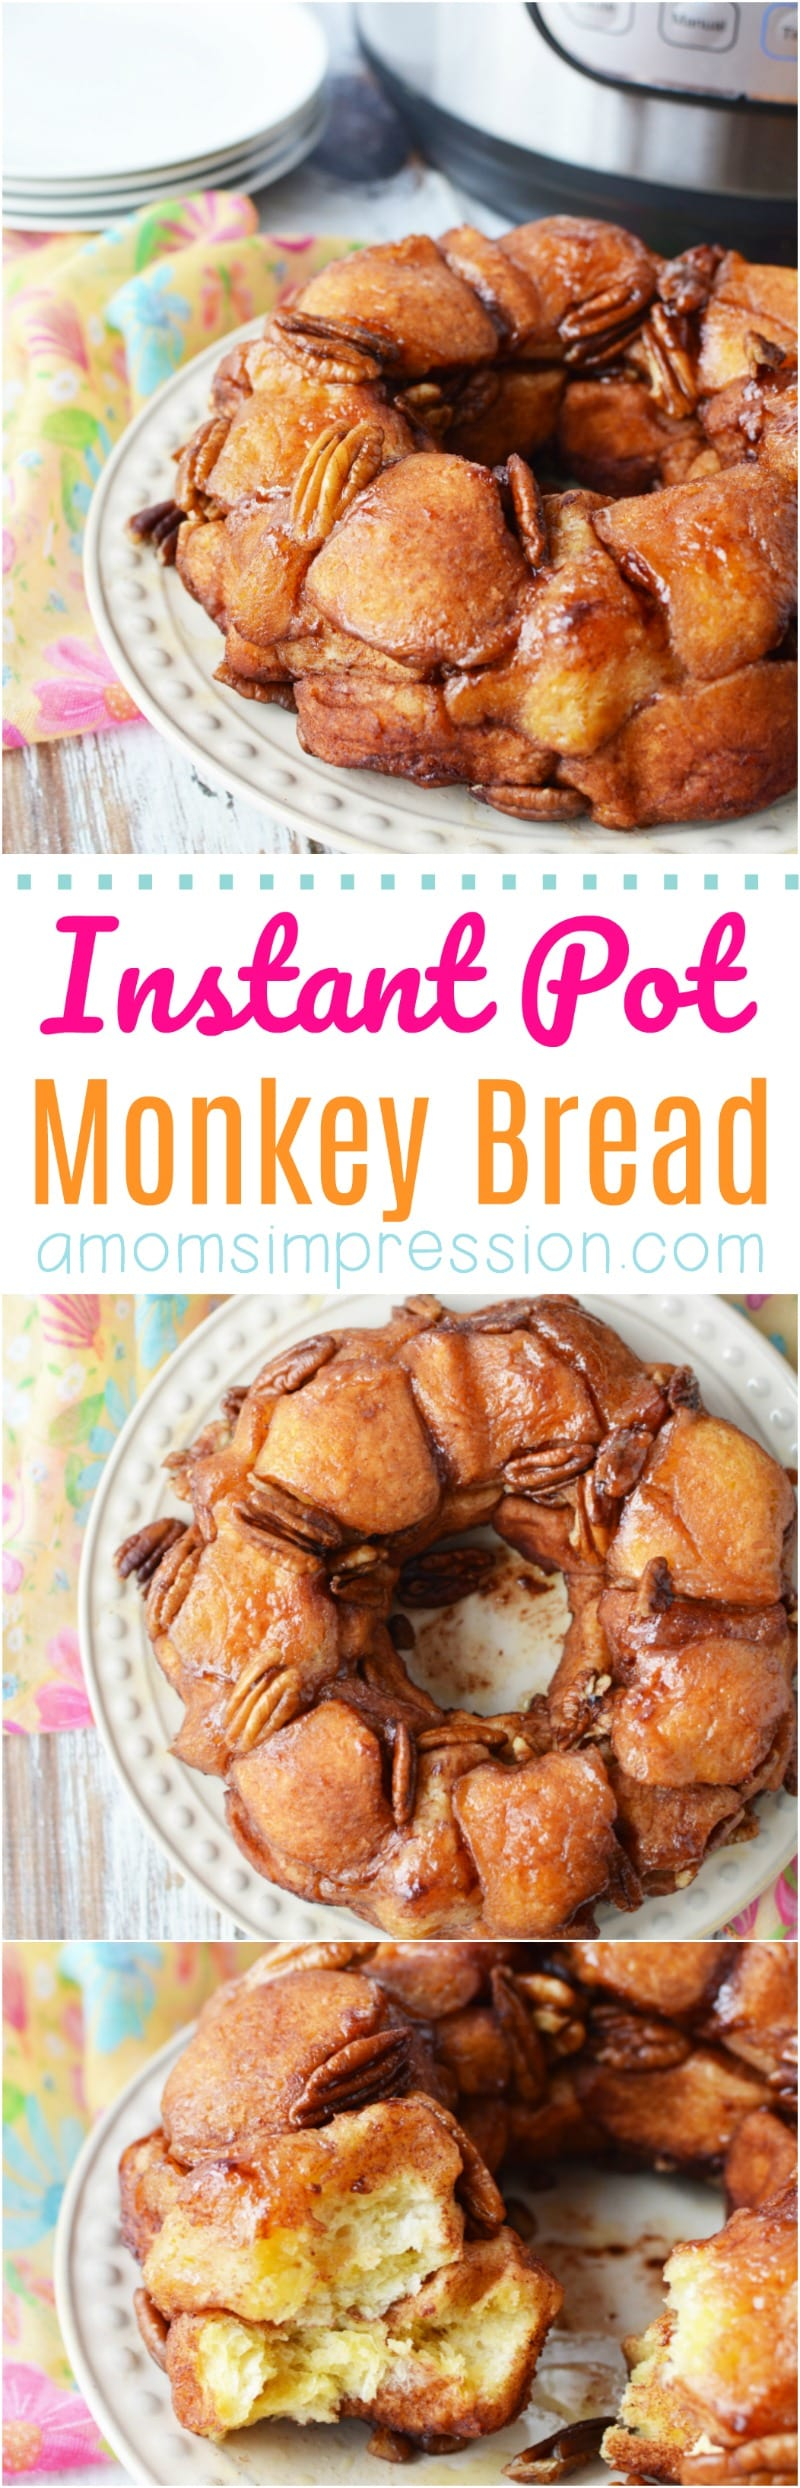 This Easy Monkey Bread recipe is perfect for a quick breakfast or even dessert. You can pull apart each little morsel to feed a crowd with ease. Since we made it with canned biscuits, you can have it ready in just a few minutes time using your Instant Pot.